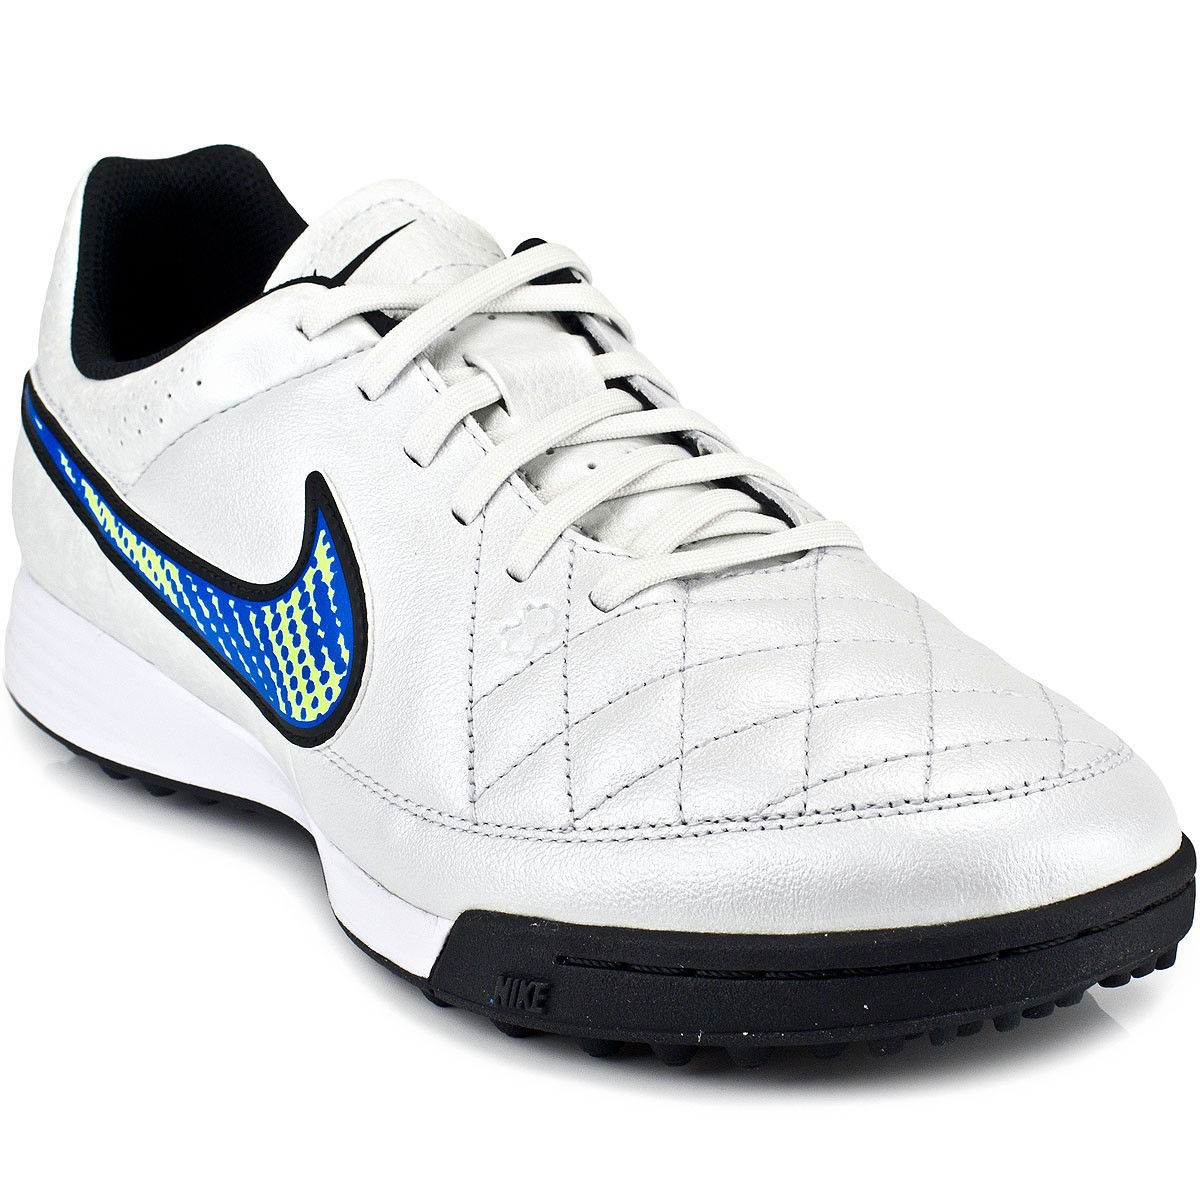 Chuteira Nike Tiempo Genio Leather TF 631284 3fea67ca35918